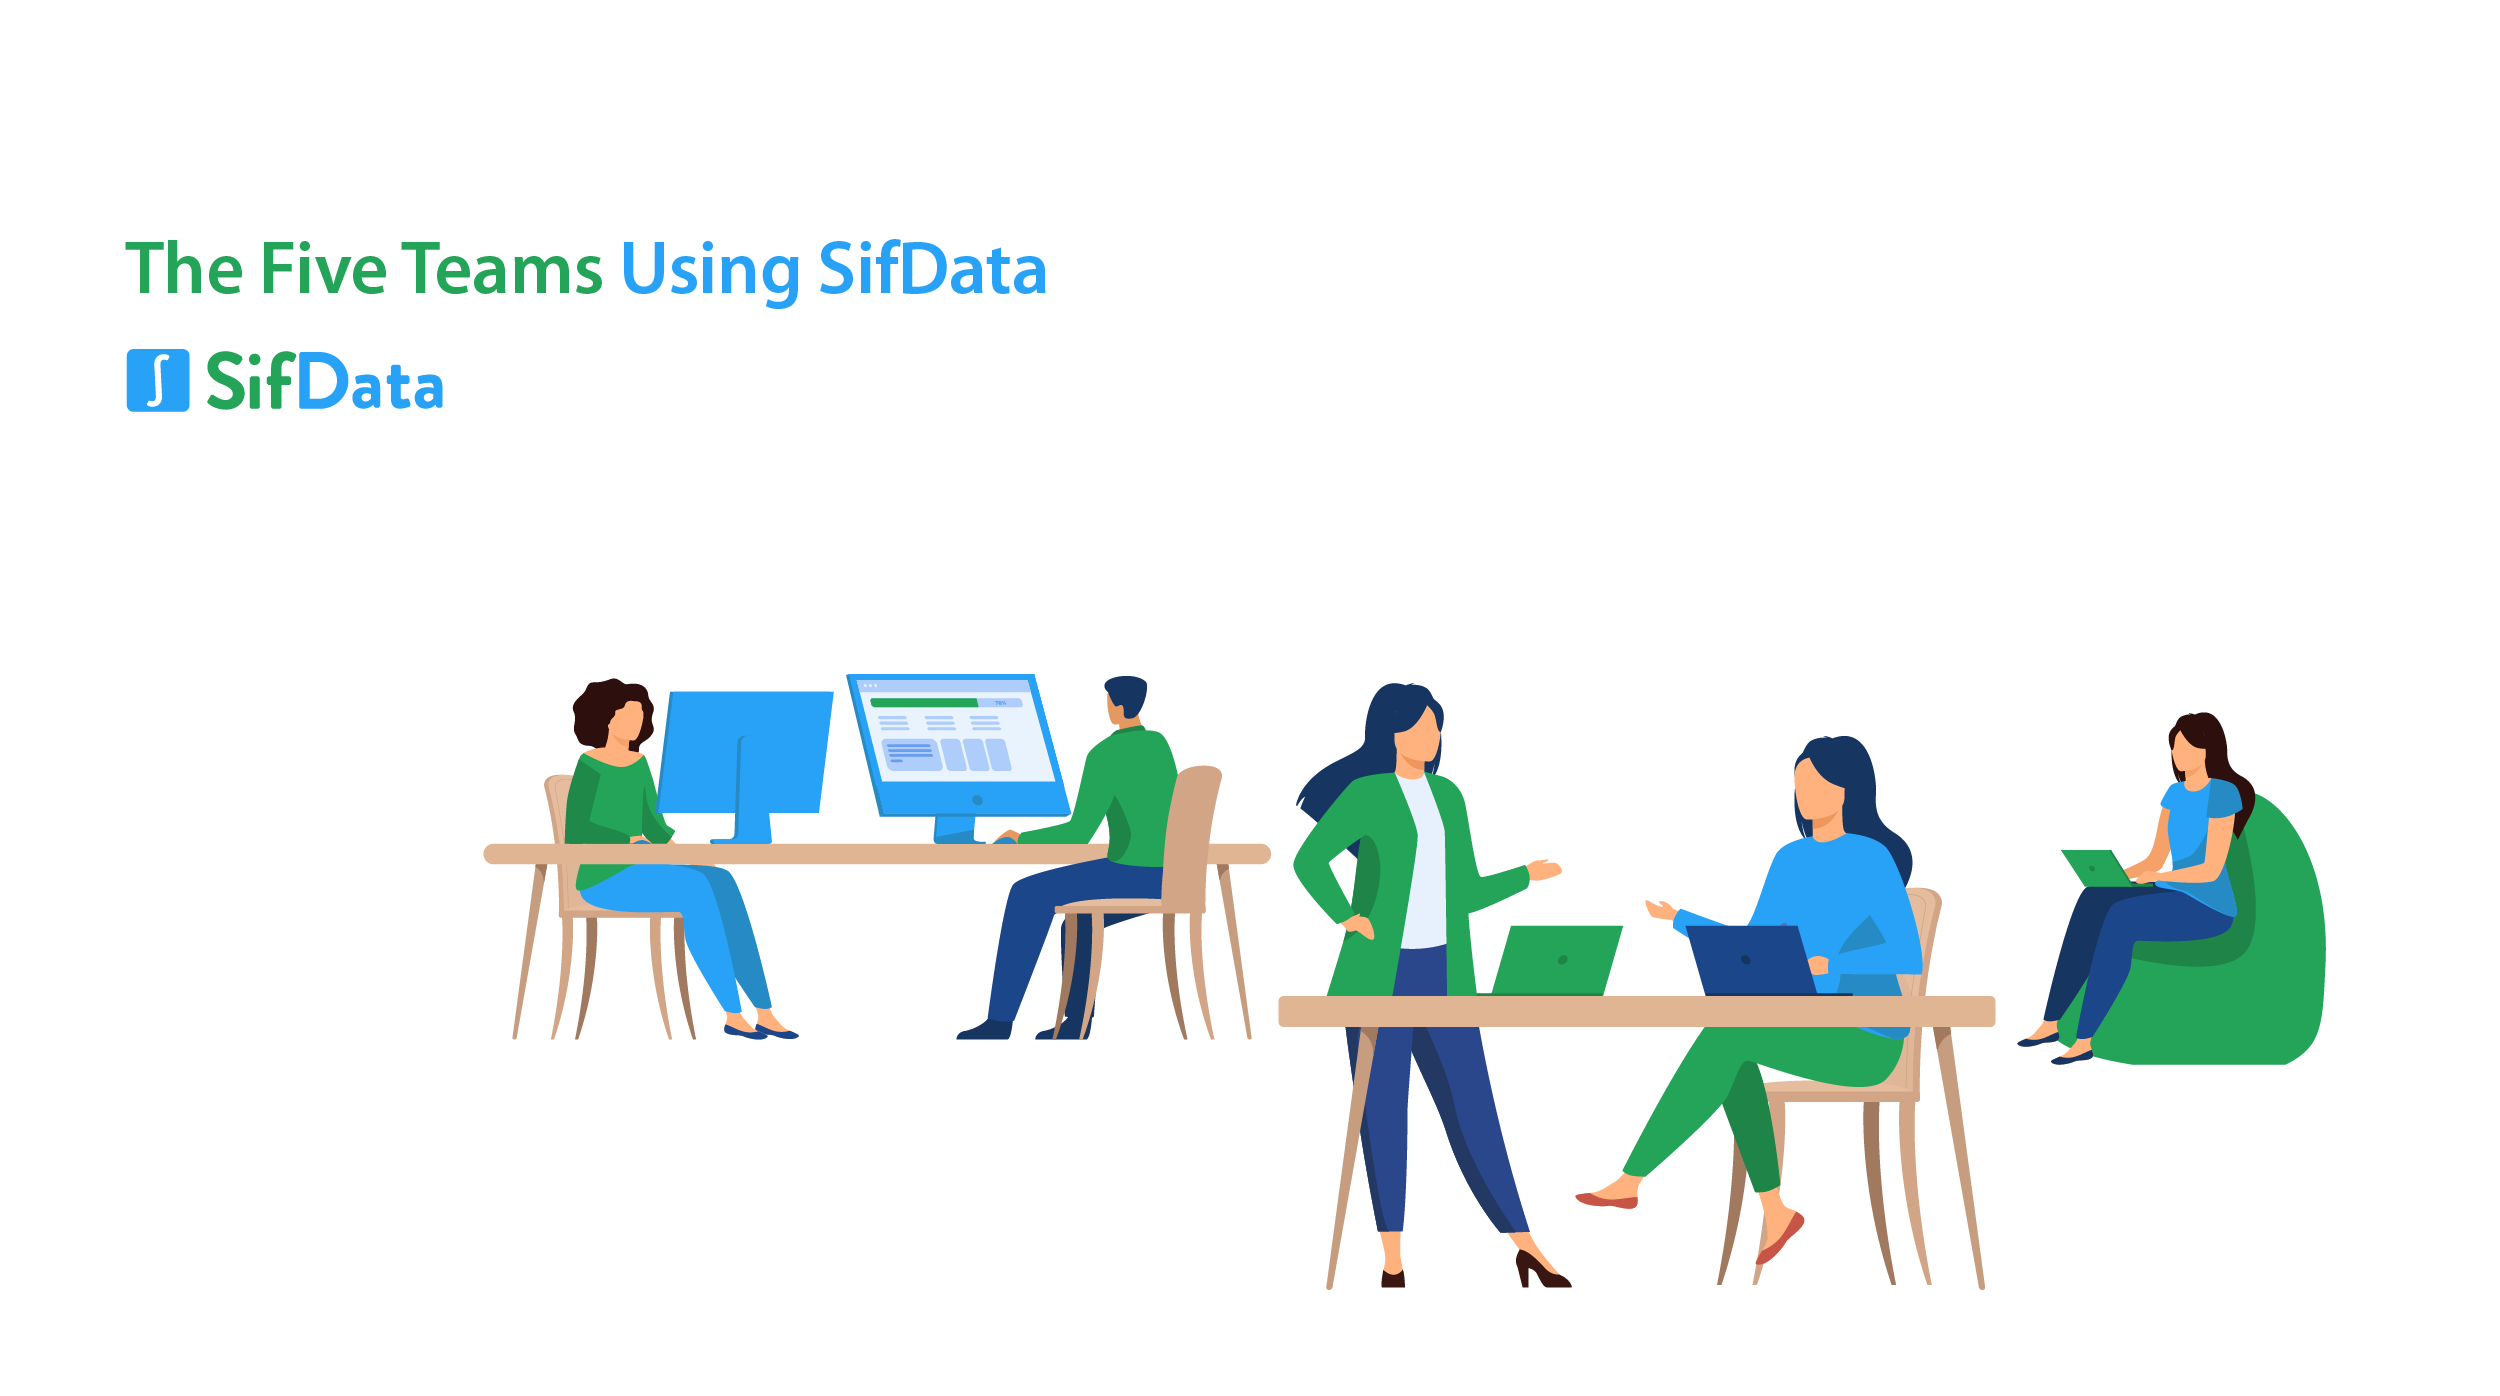 THE FIVE TEAMS USING SIFDATA